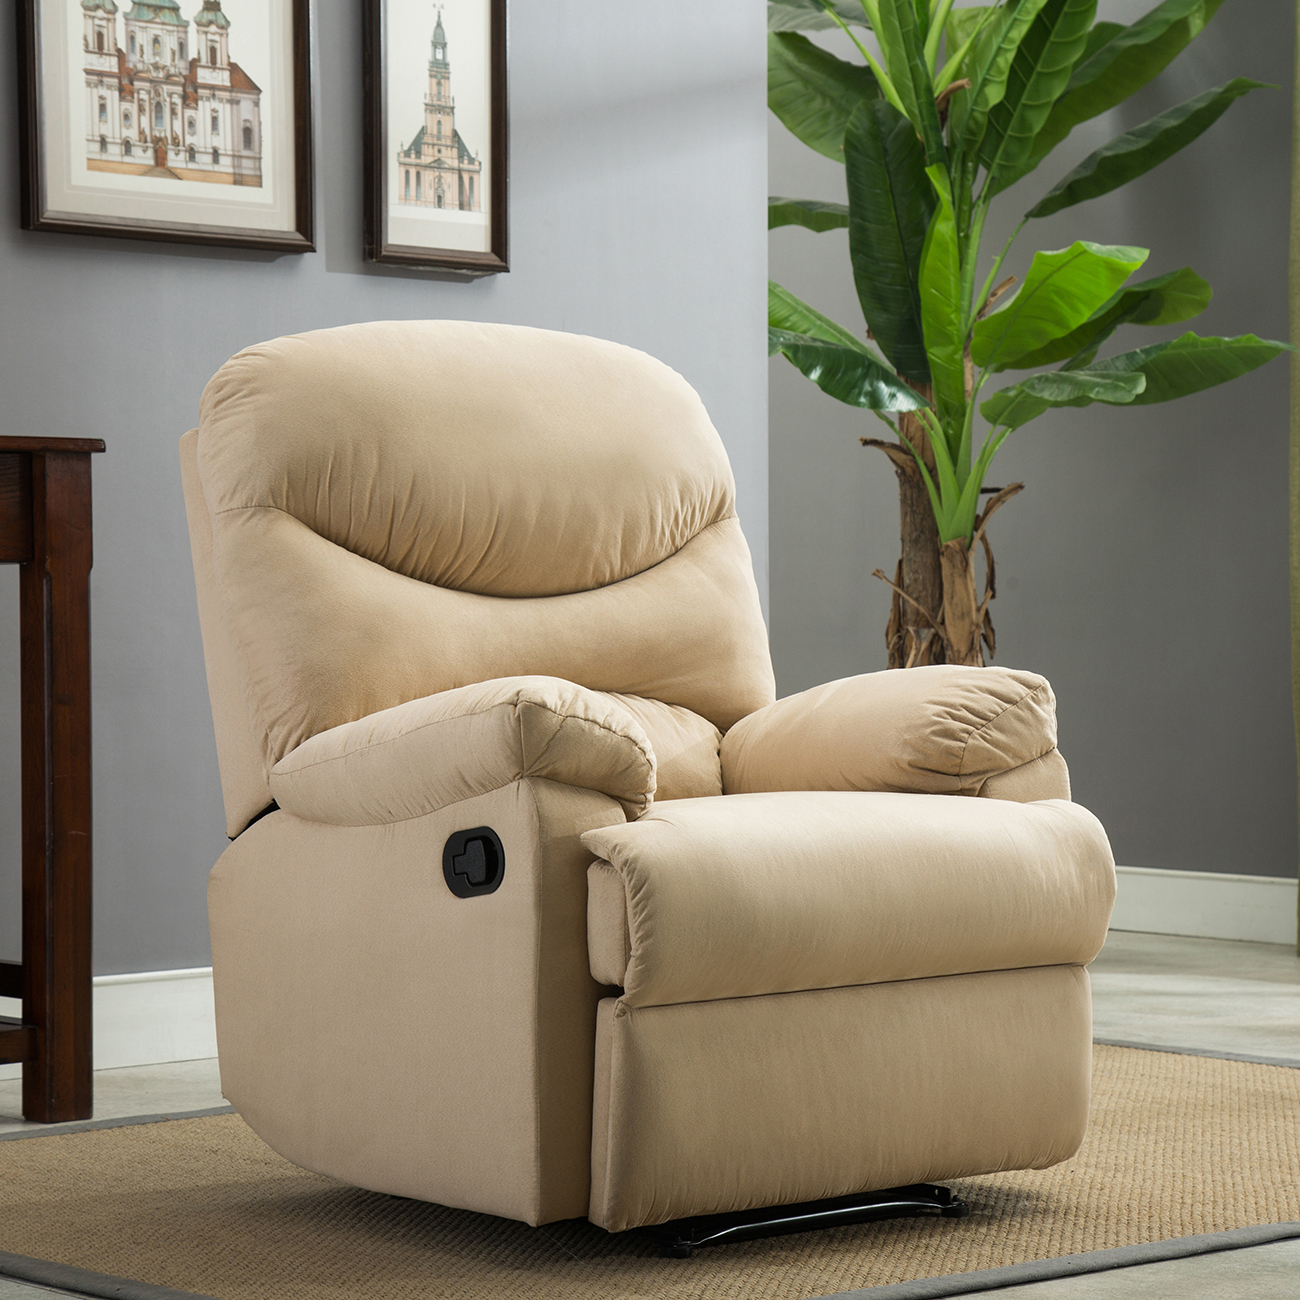 Recliner Chair Microfiber Reclining Furniture Home Living Room